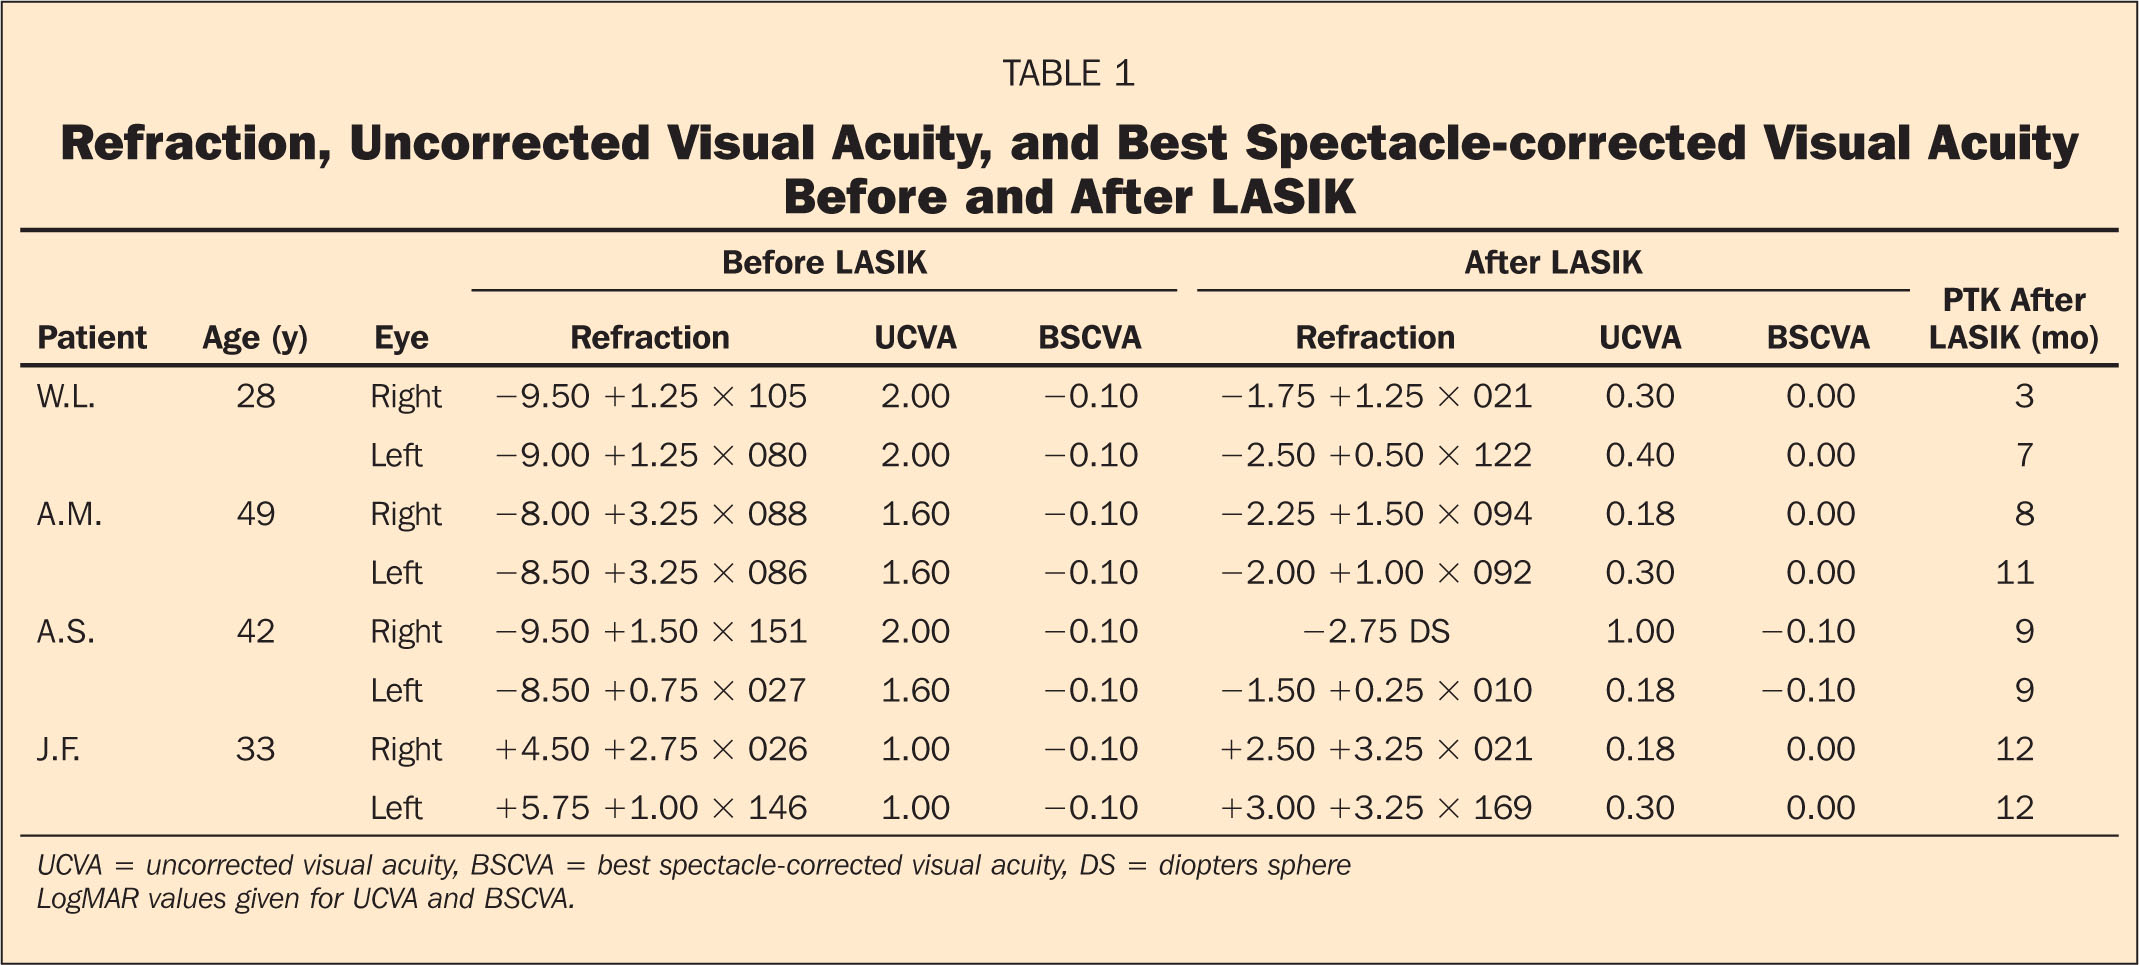 Refraction, Uncorrected Visual Acuity, and Best Spectacle-Corrected Visual Acuity Before and After LASIK